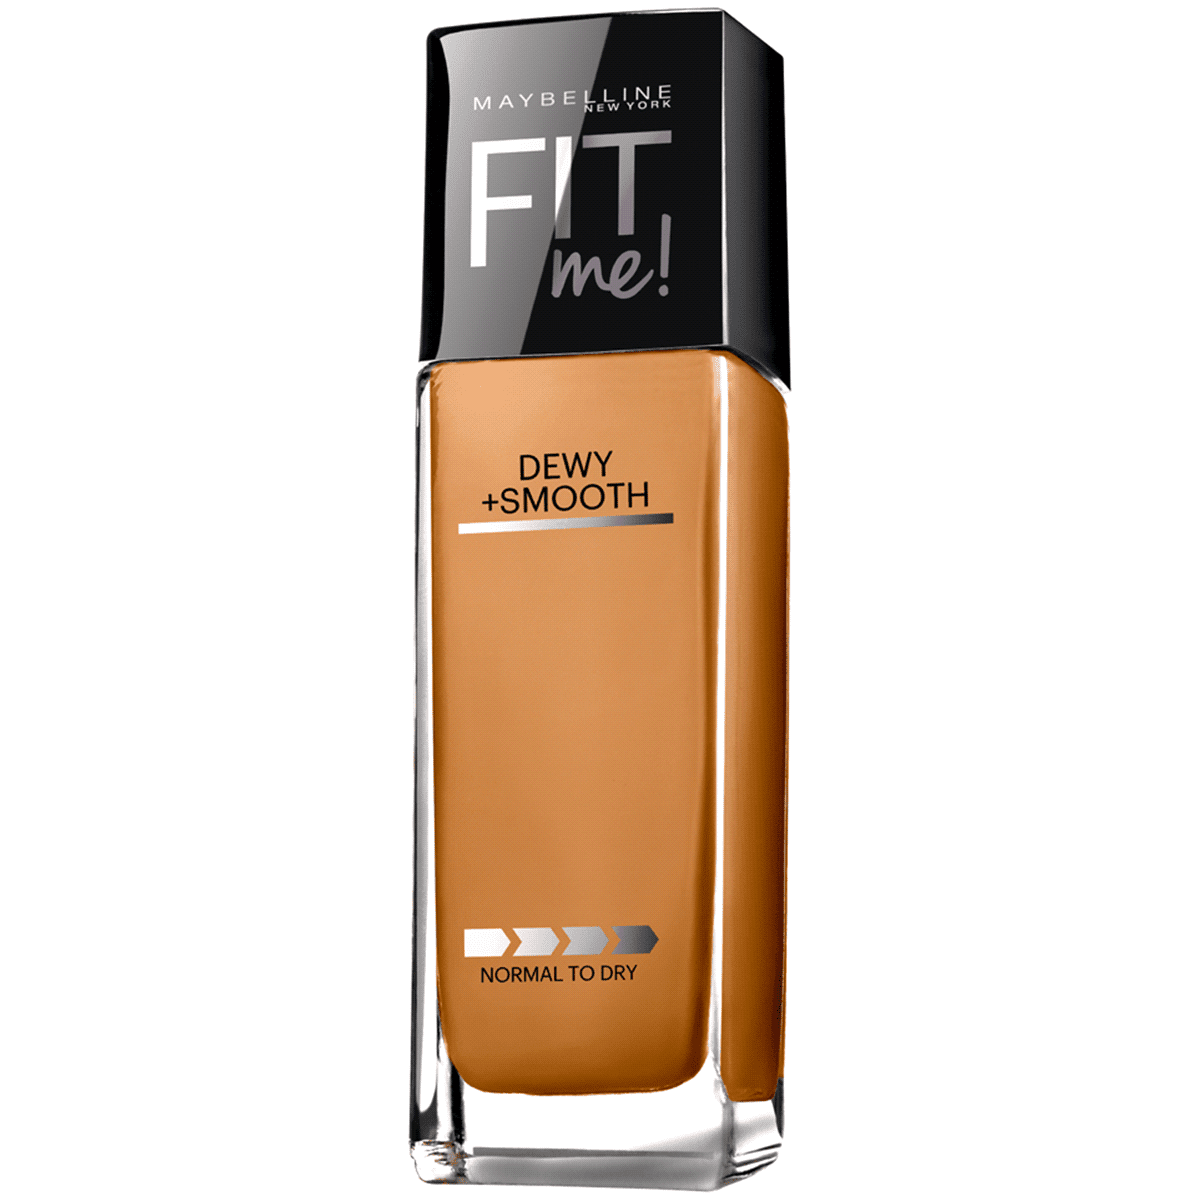 The 9 Best Maybelline Foundations To Try